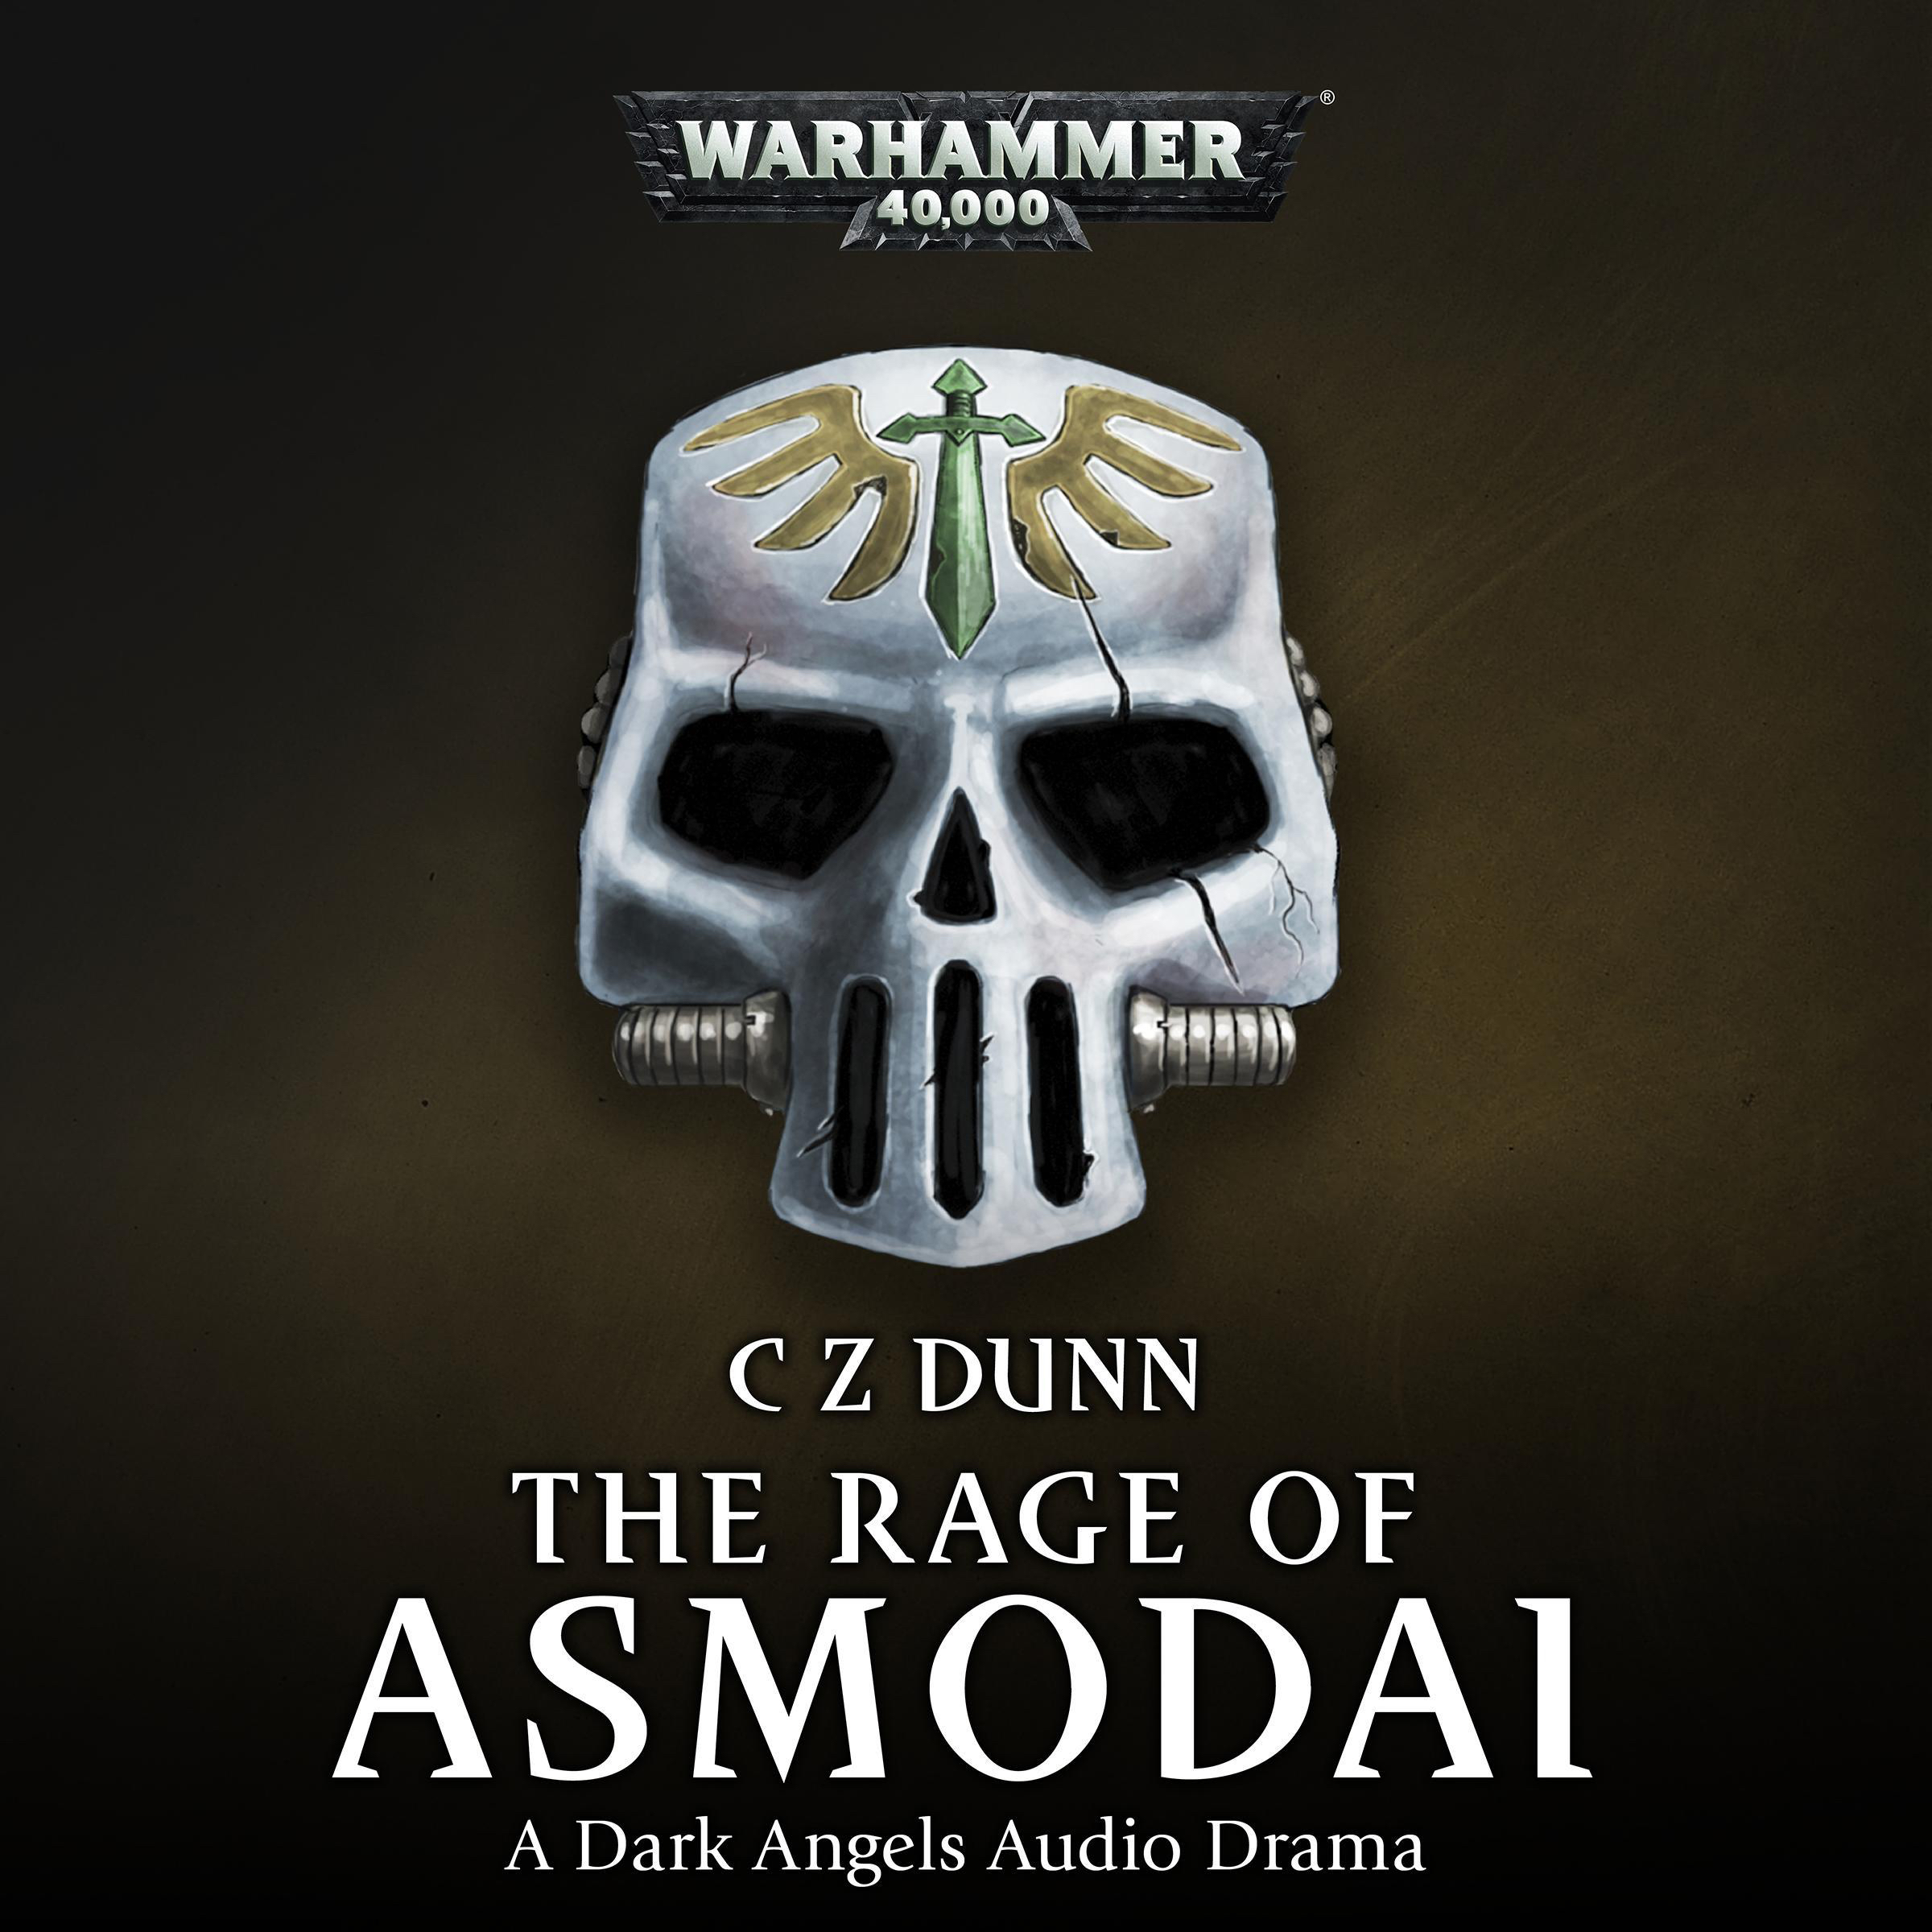 The Rage of Asmodai by C.Z. Dunn